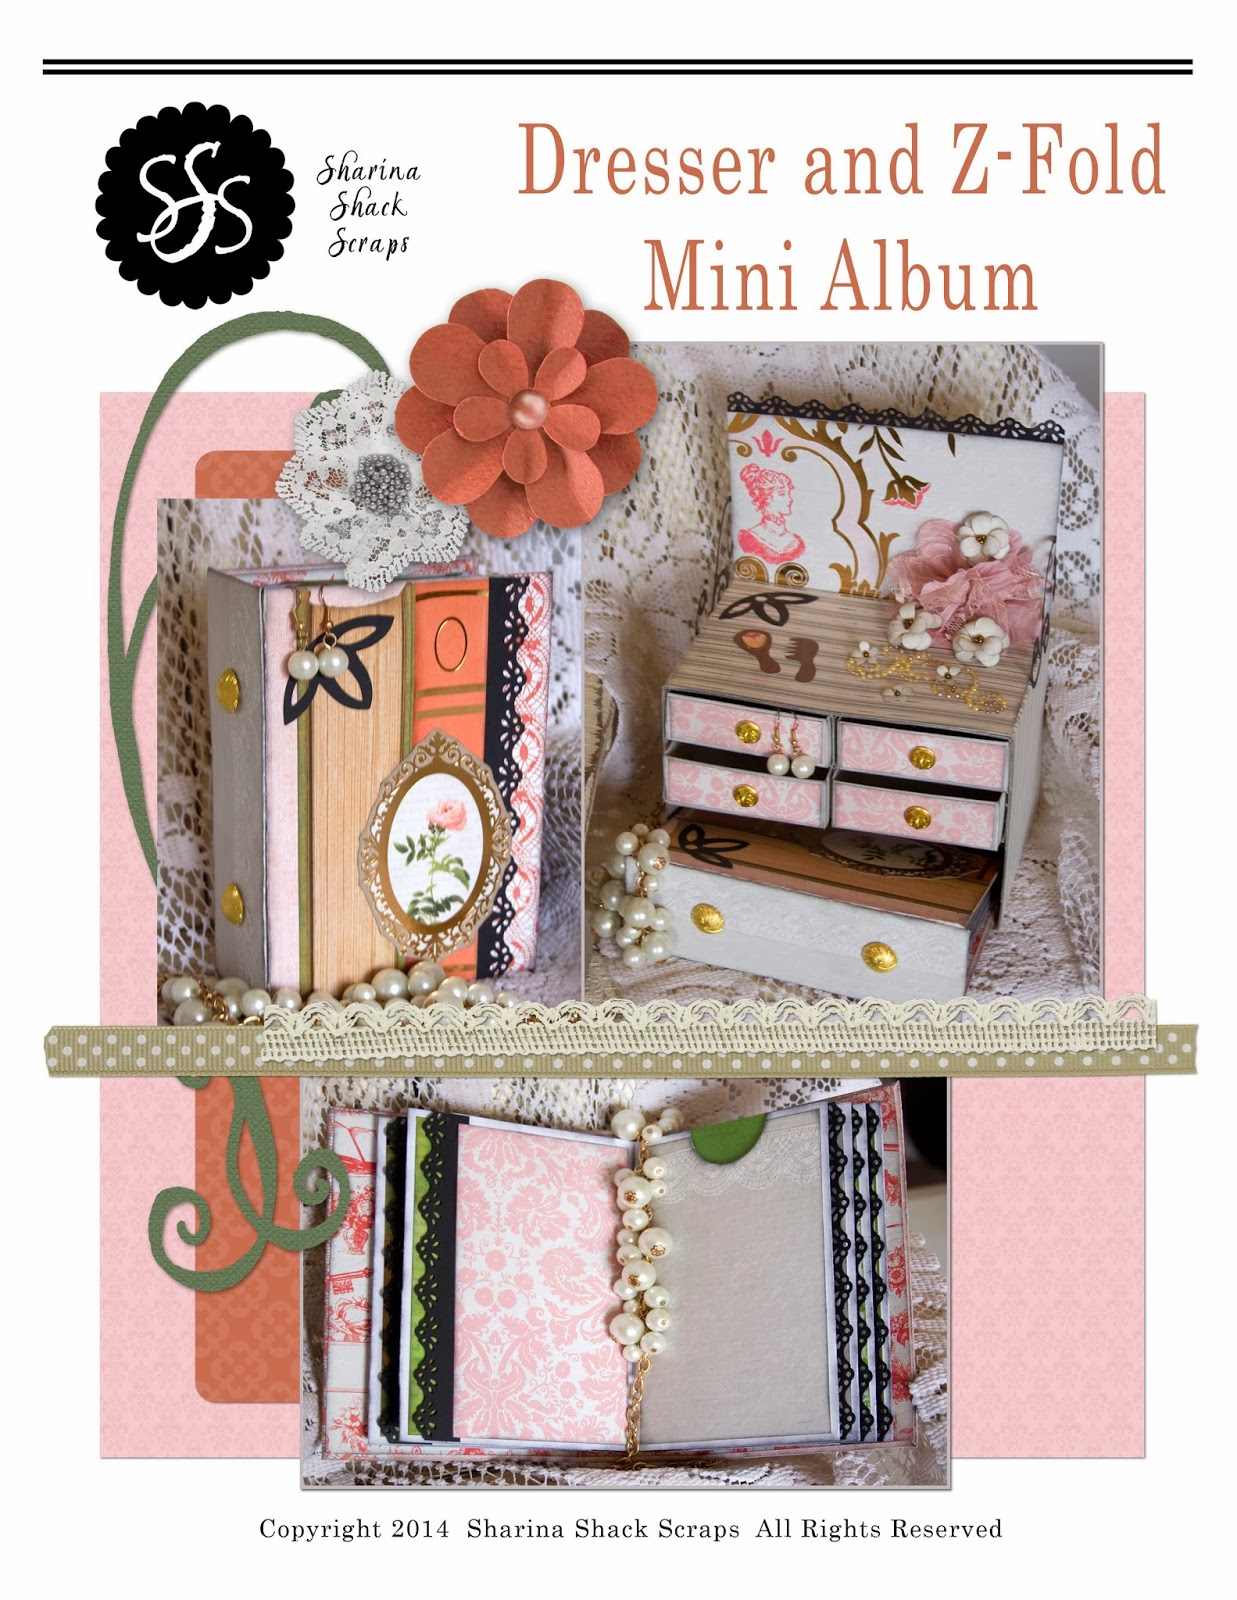 http://sharinashack.com/product/dresser-z-fold-mini-album/